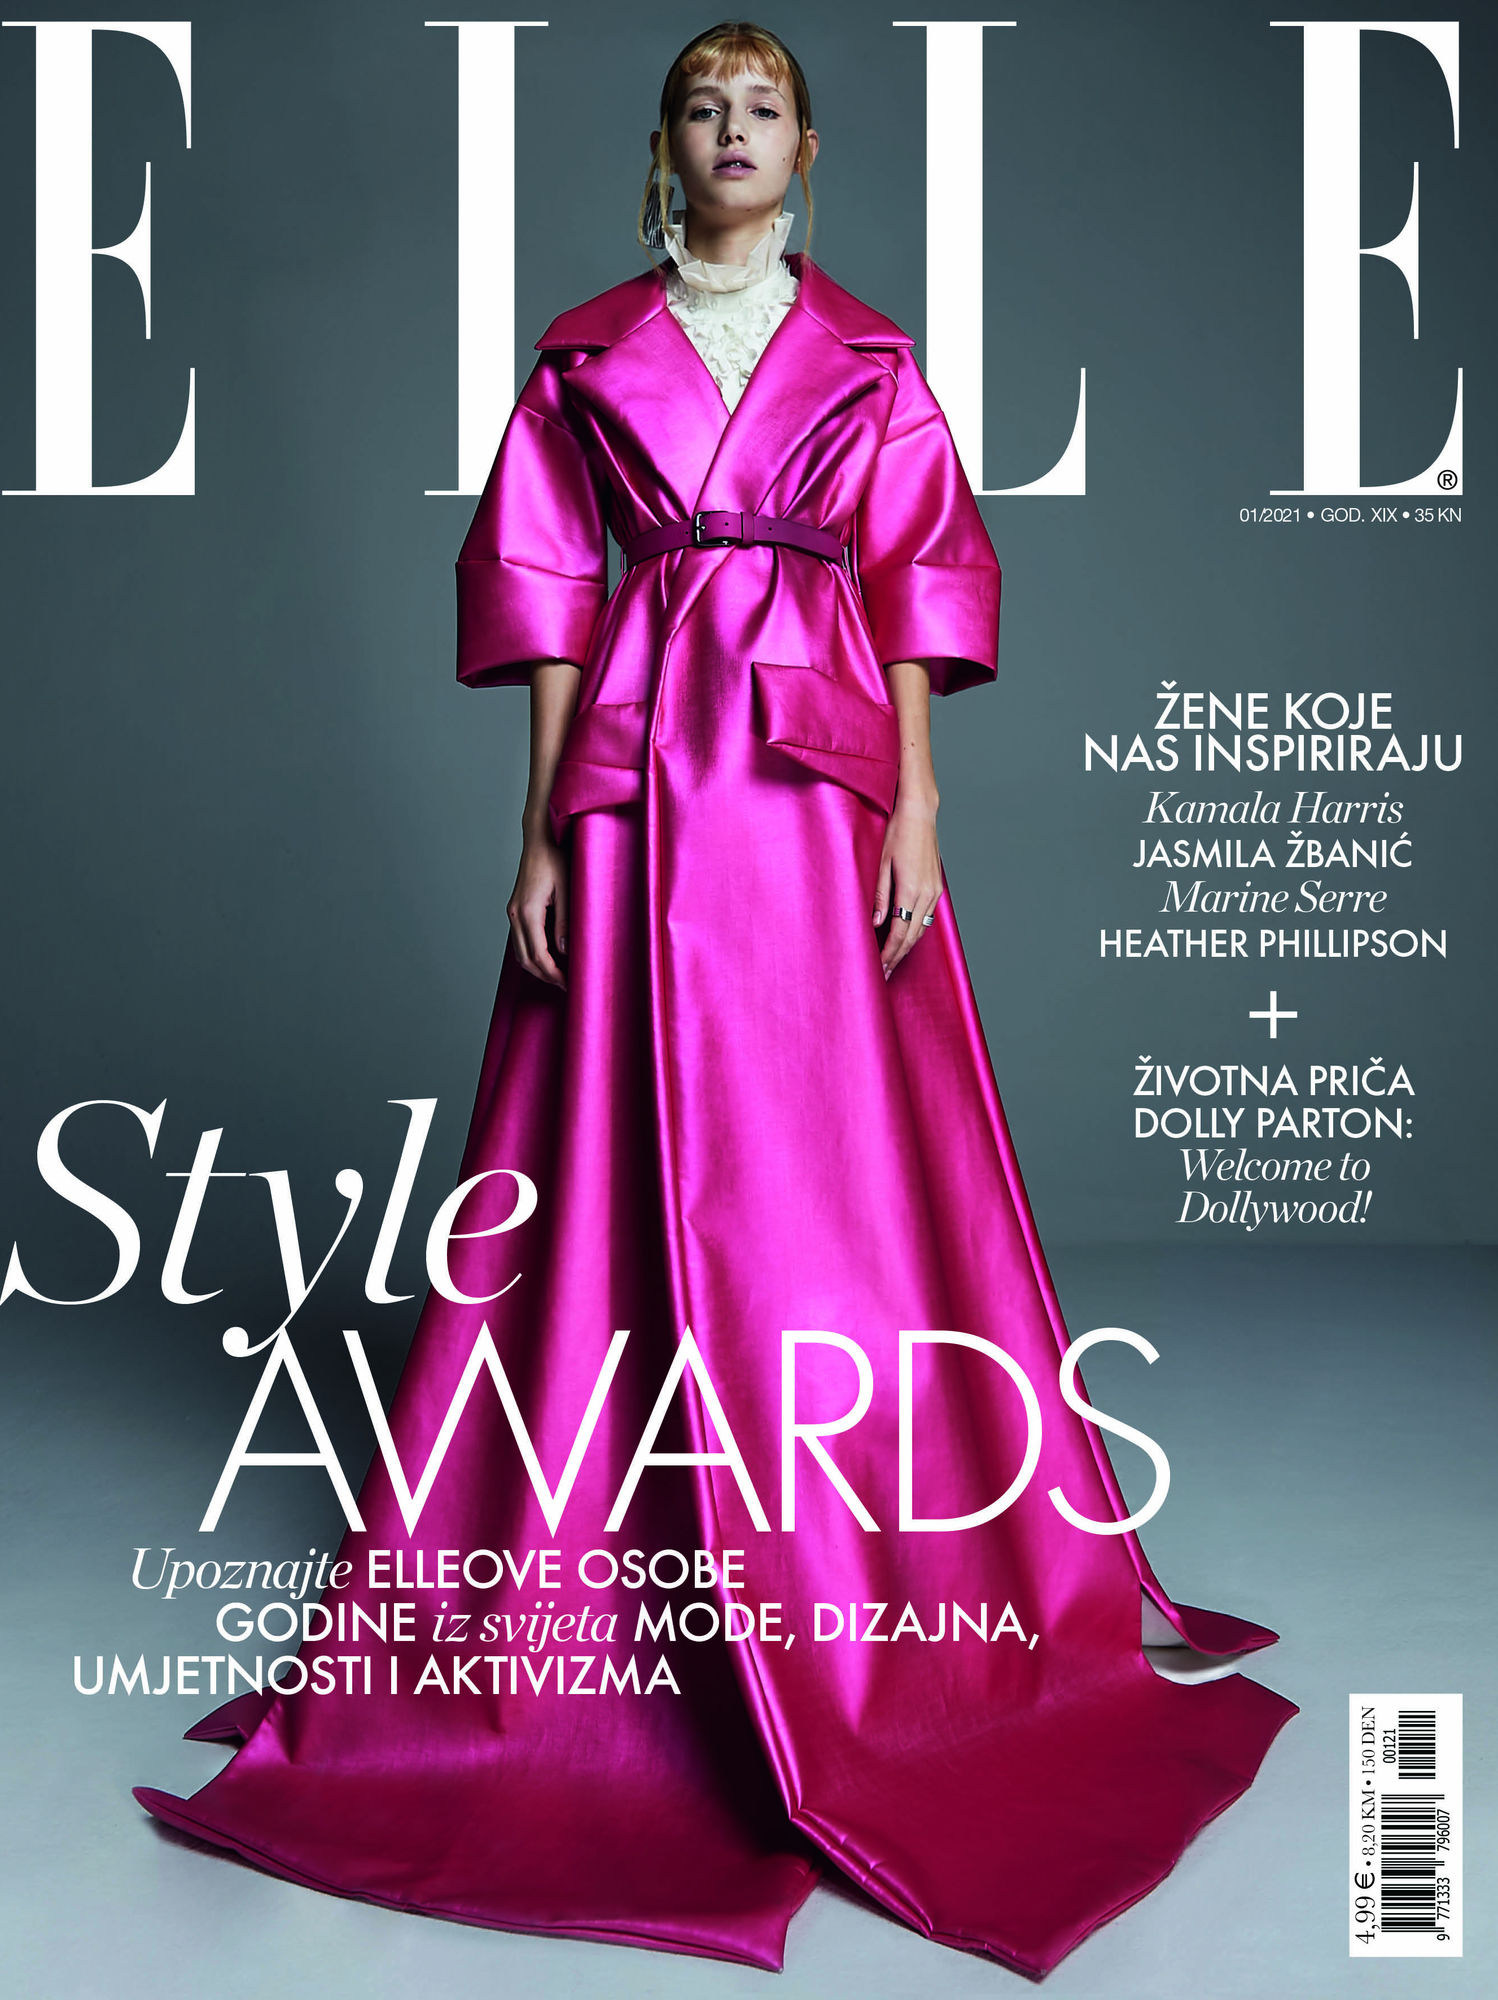 COVER SHOOTING for ELLE CROATIA by WINTELER PRODUCTION